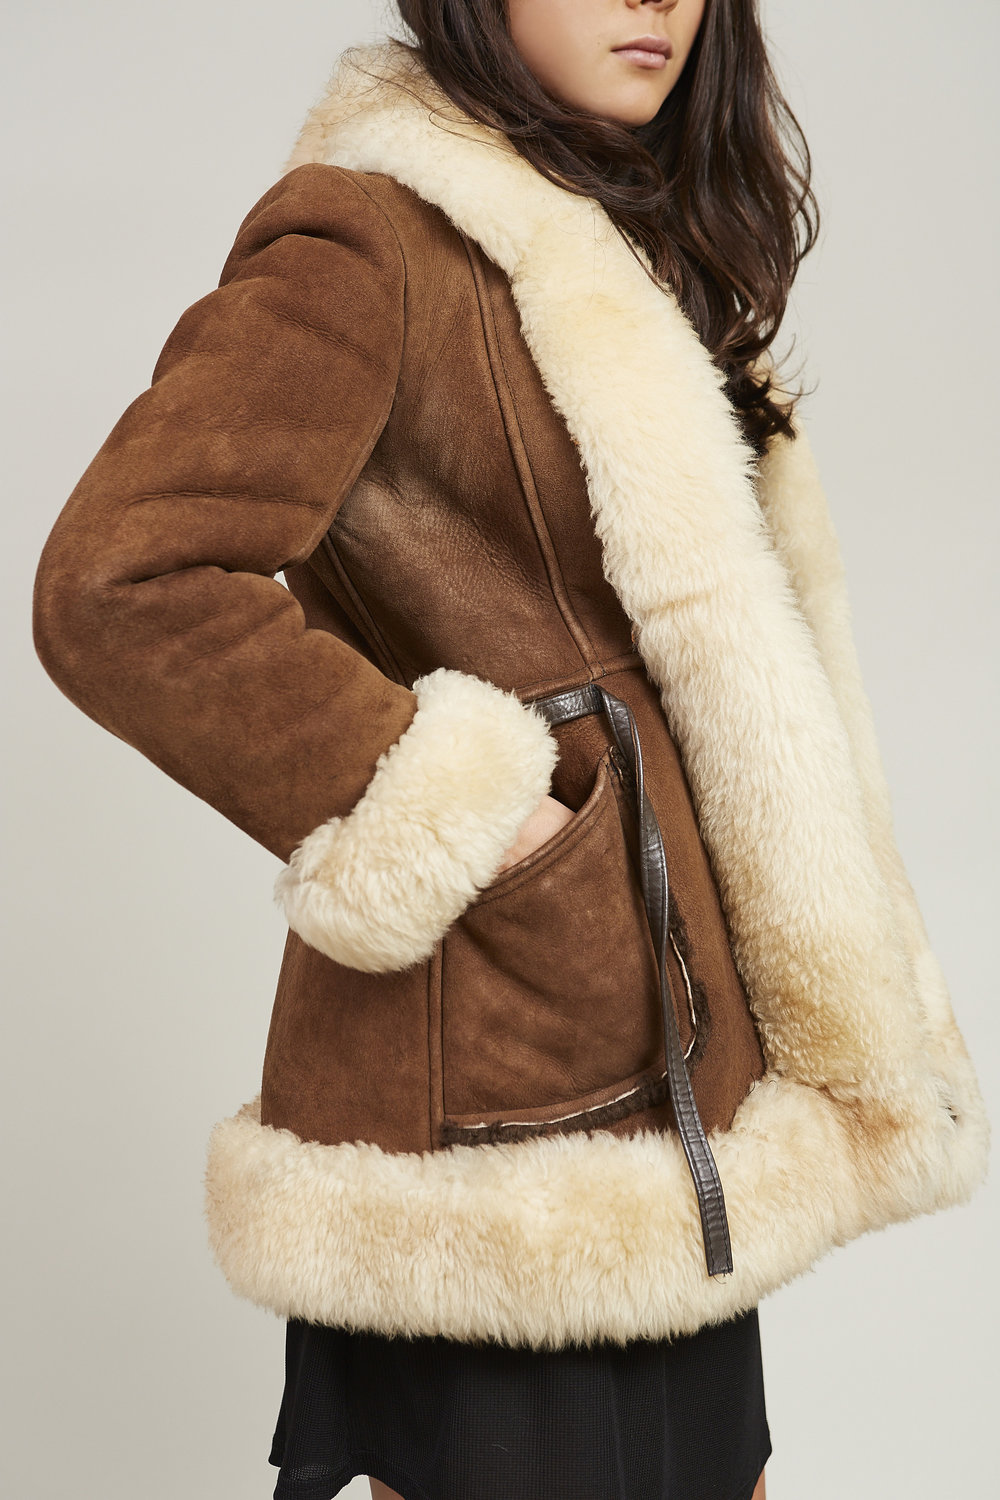 The_May_Co_Coat-023.jpg